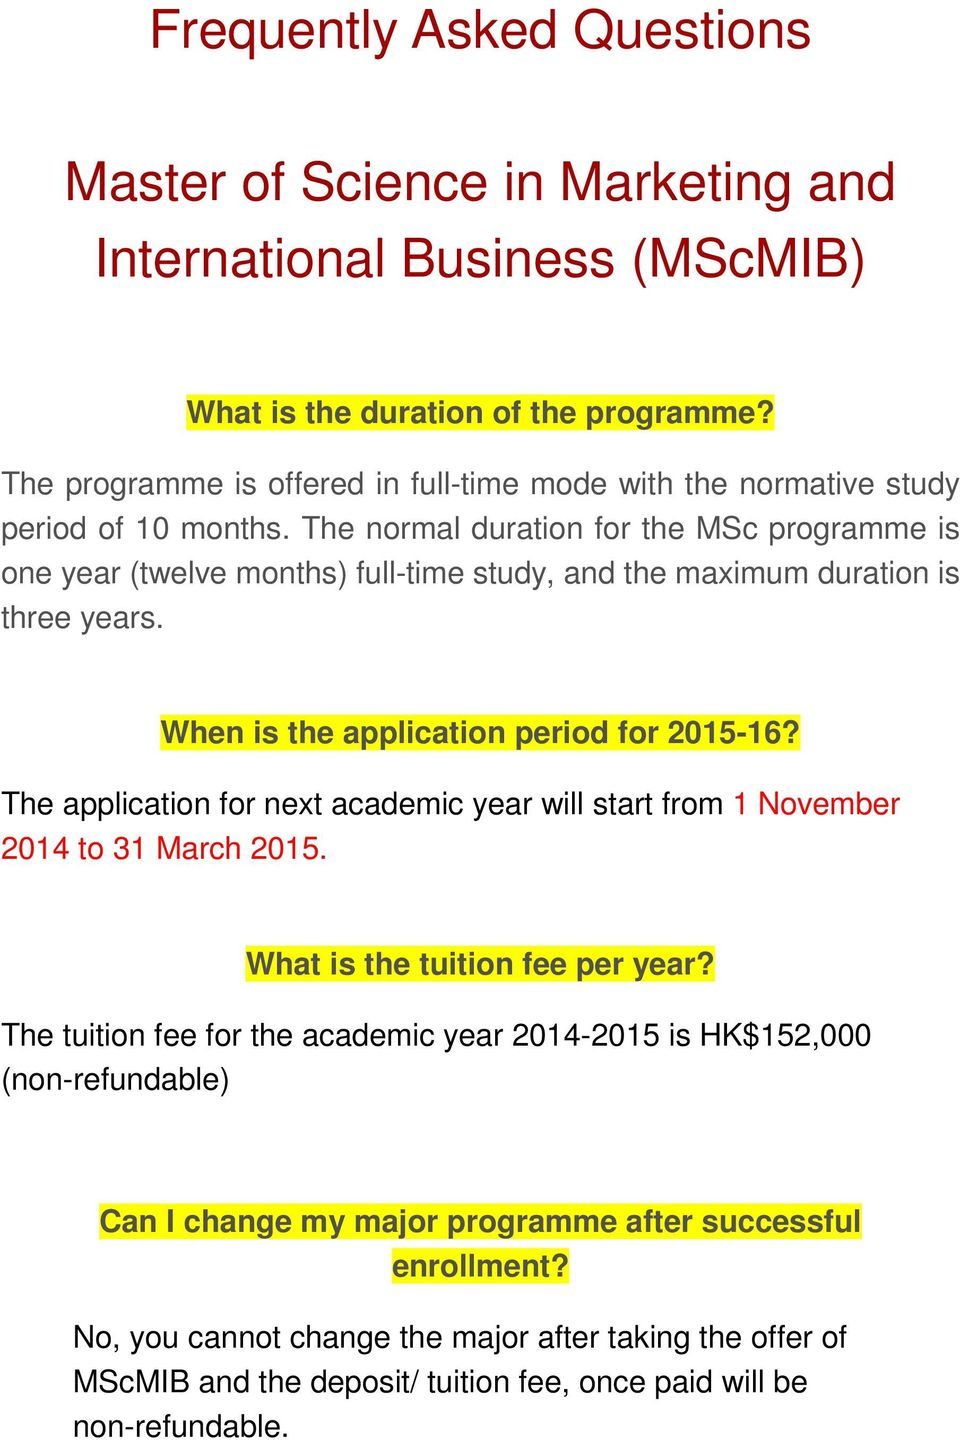 The normal duration for the MSc programme is one year (twelve months) full-time study, and the maximum duration is three years. When is the application period for 2015-16?